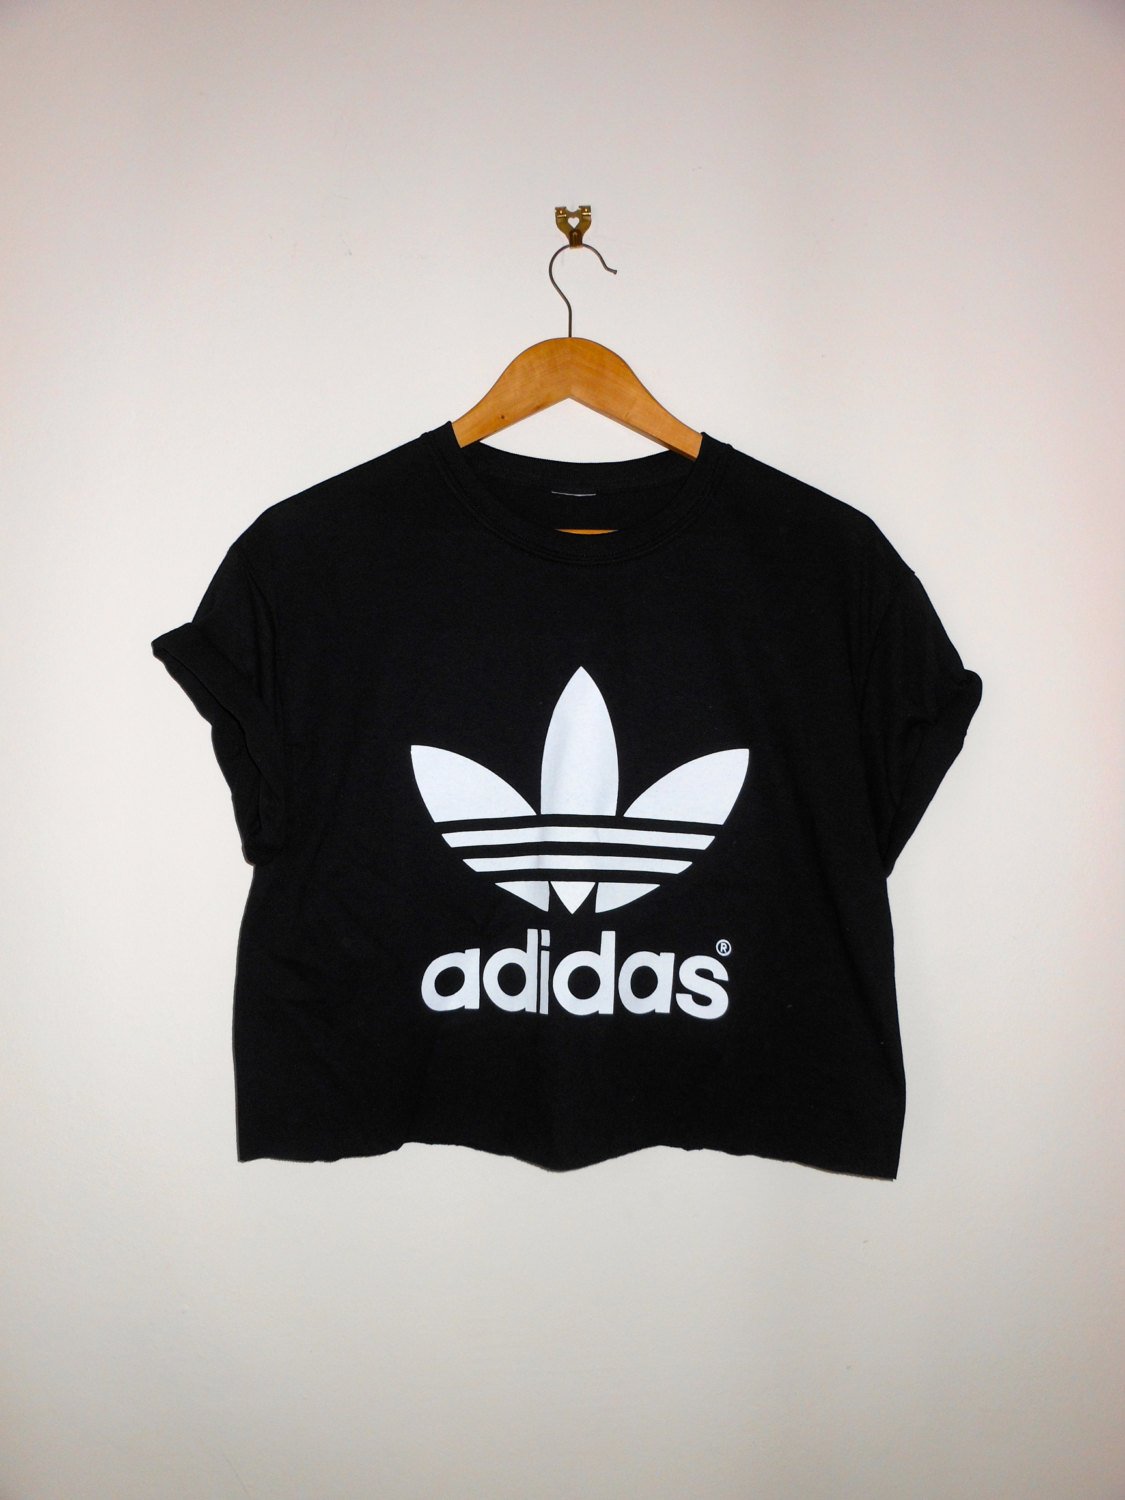 classic back adidas sexy swag style crop top tshirt fresh boss dope celebrity festival clothing. Black Bedroom Furniture Sets. Home Design Ideas